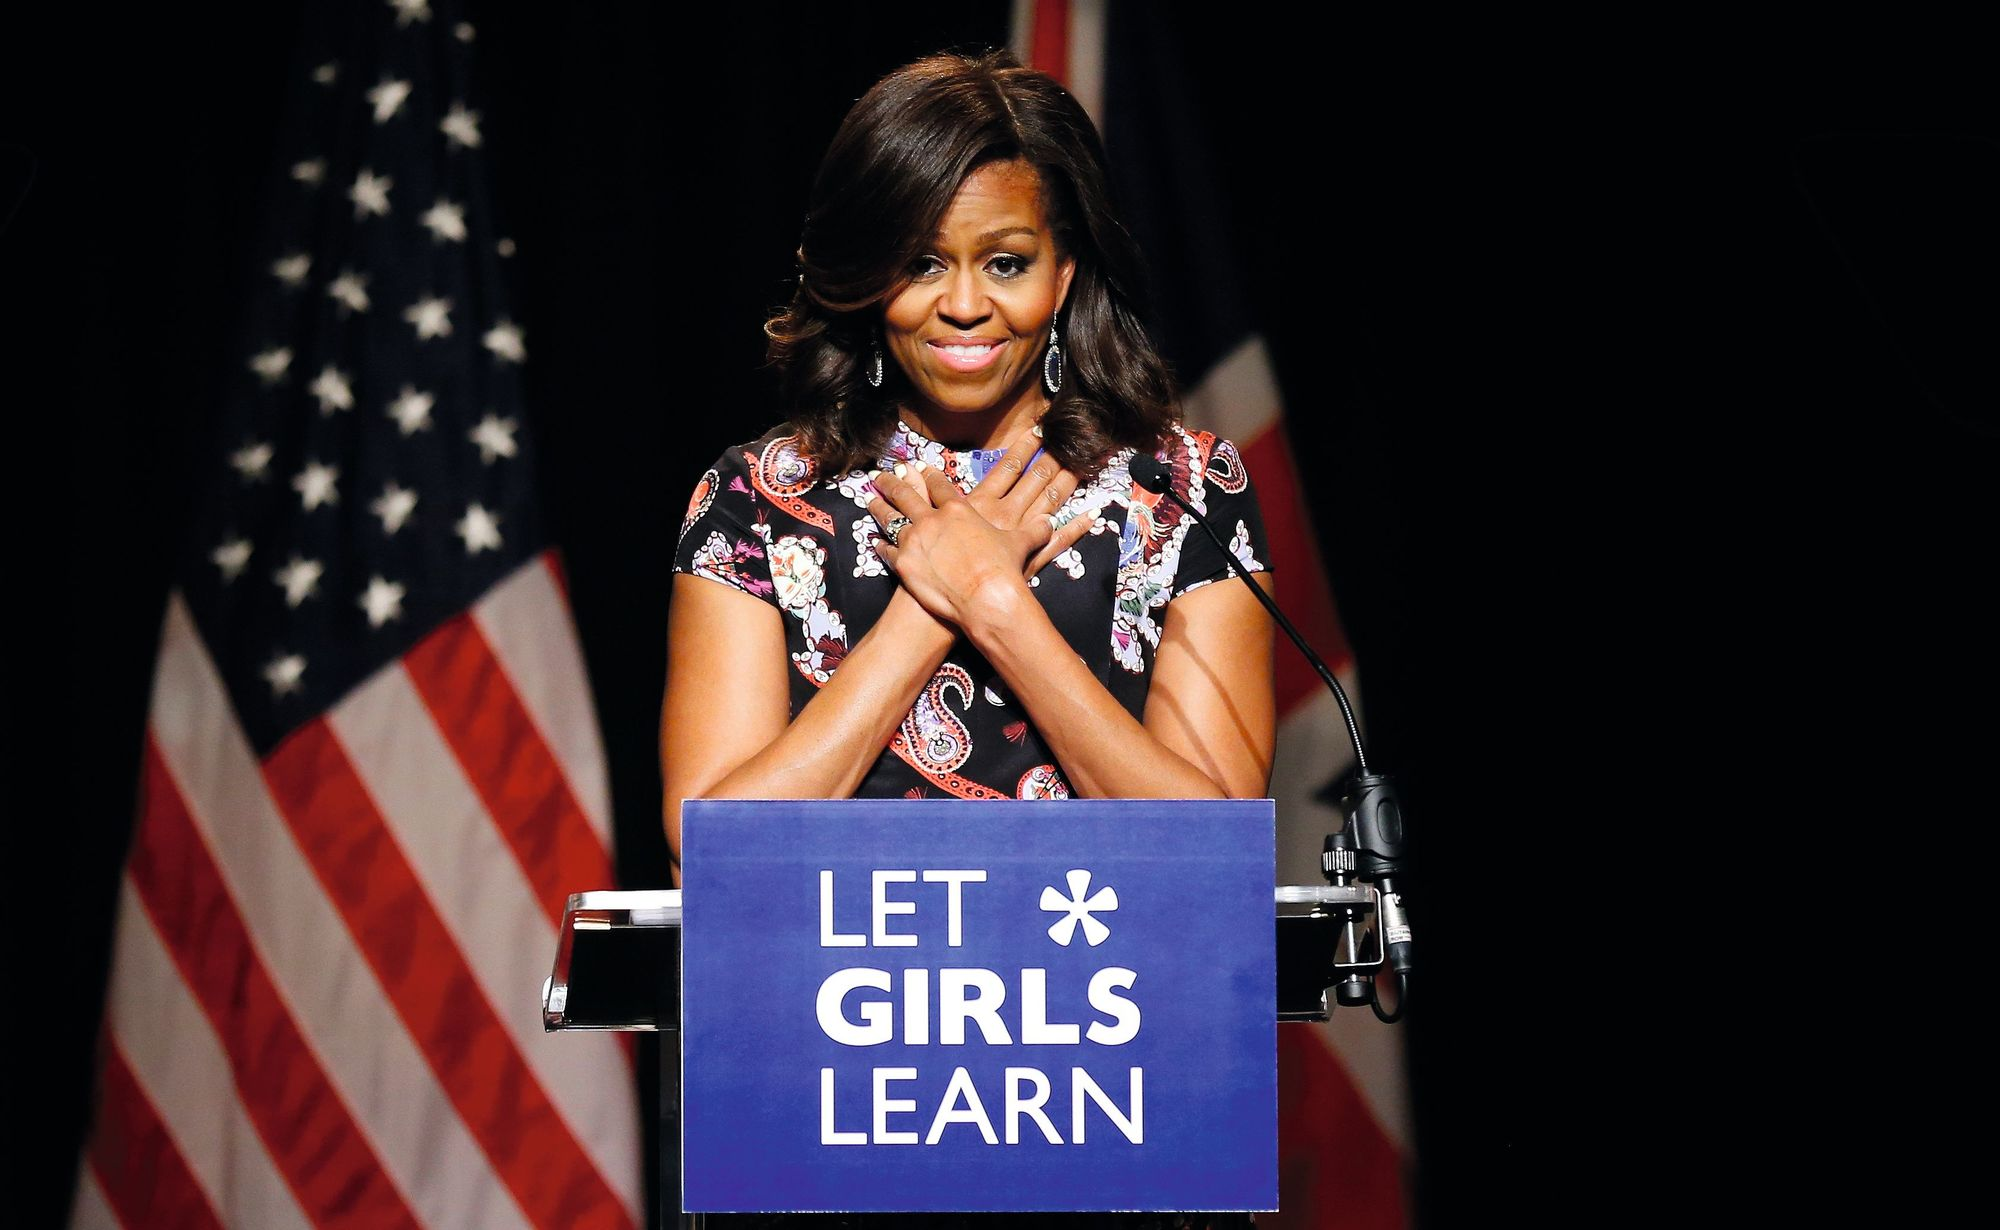 Michelle Obama, the US First Lady from 2009 to 2017 delivers a speech to promote education for girls, 2015